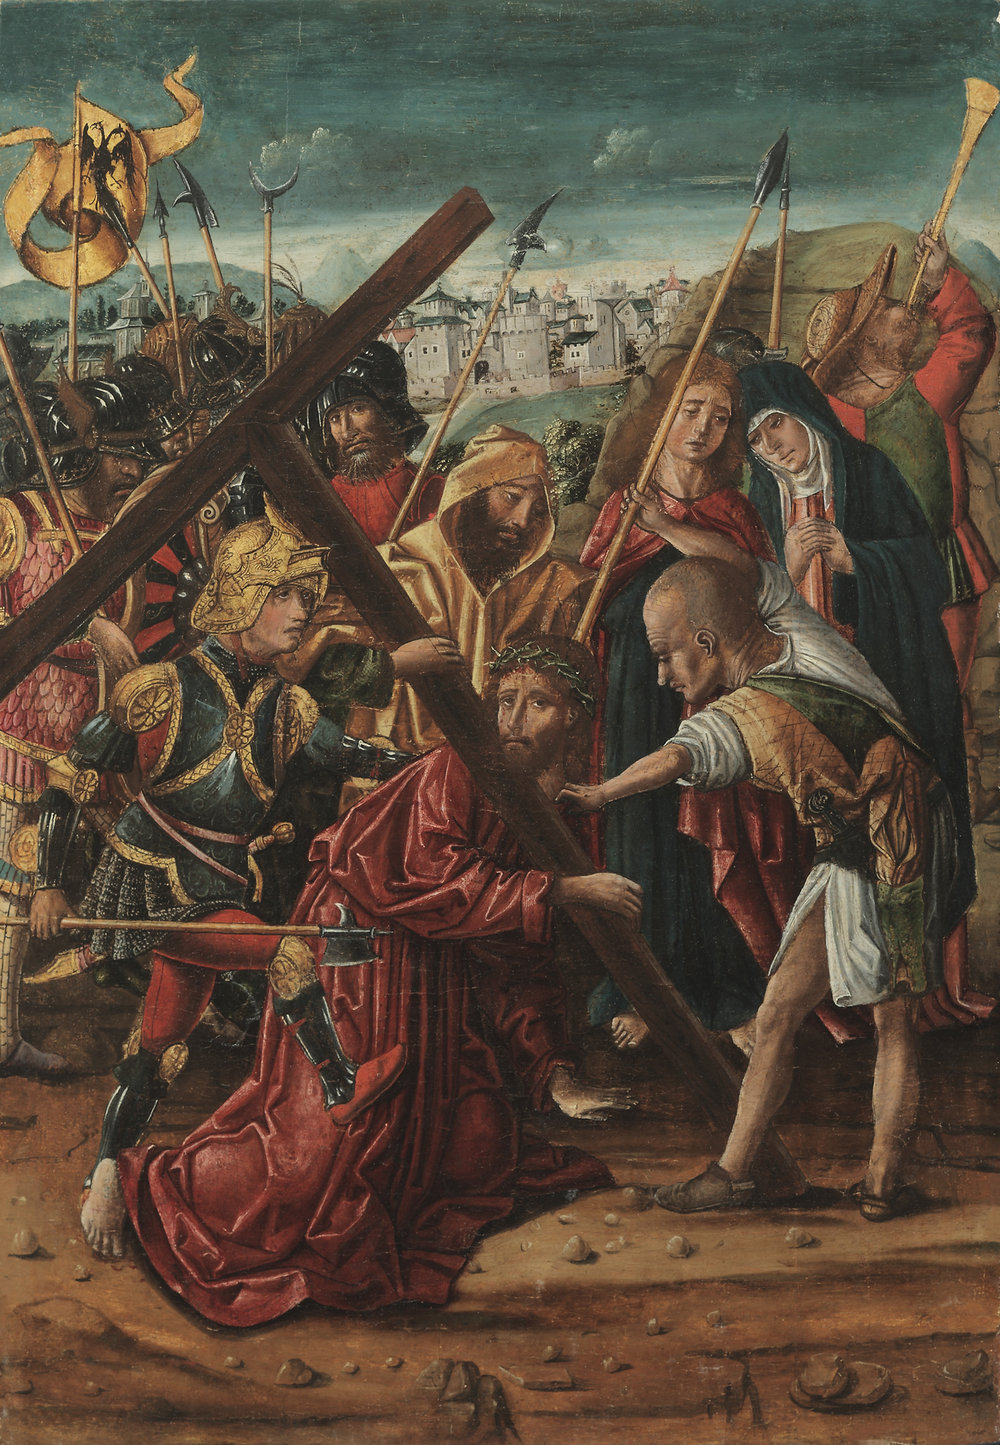 The way to Calvary